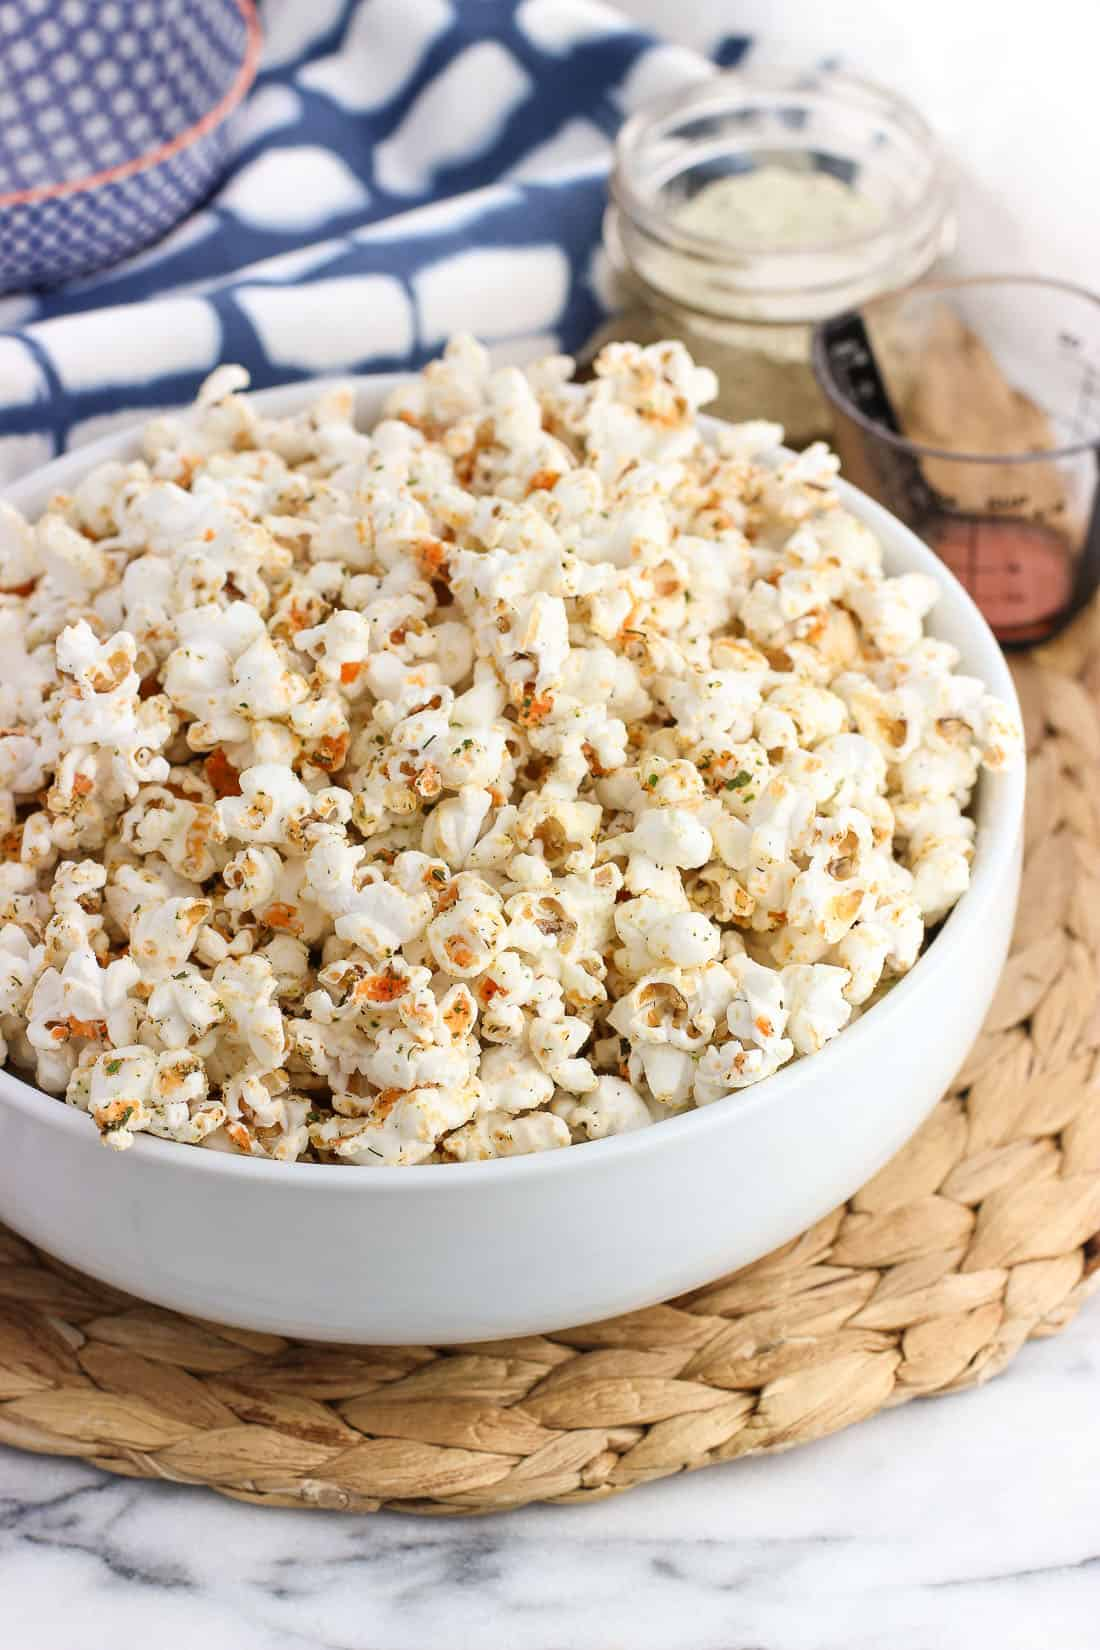 A serving bowl filled with seasoned popcorn.